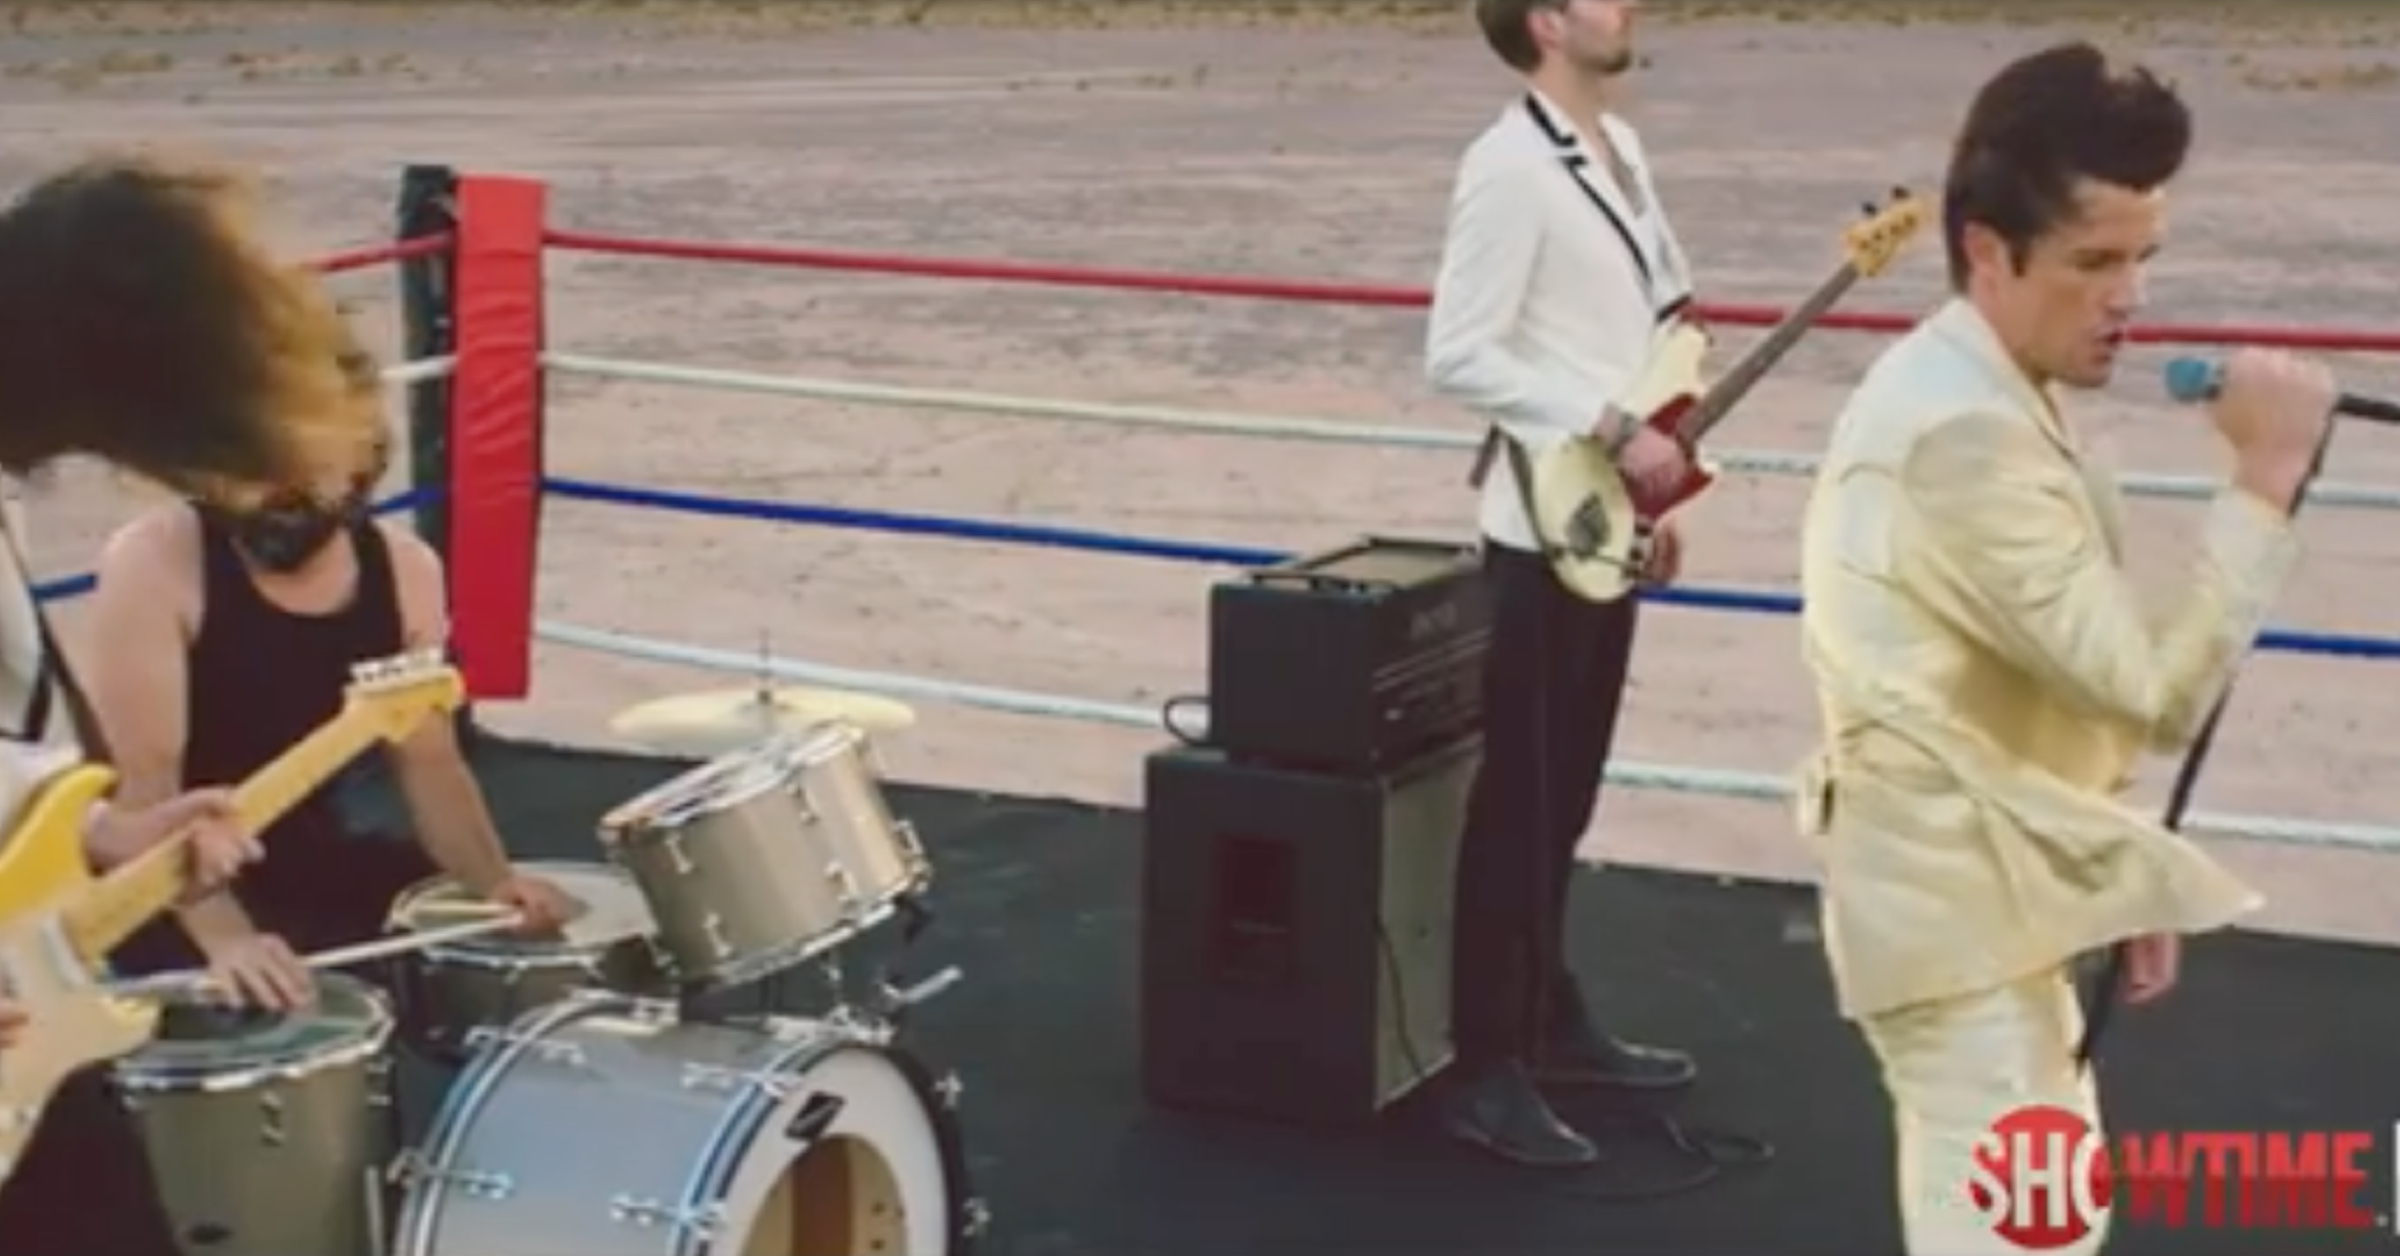 WATCH: The Killers Have Released A New Music Video Specifically For The Mayweather/McGregor Fight